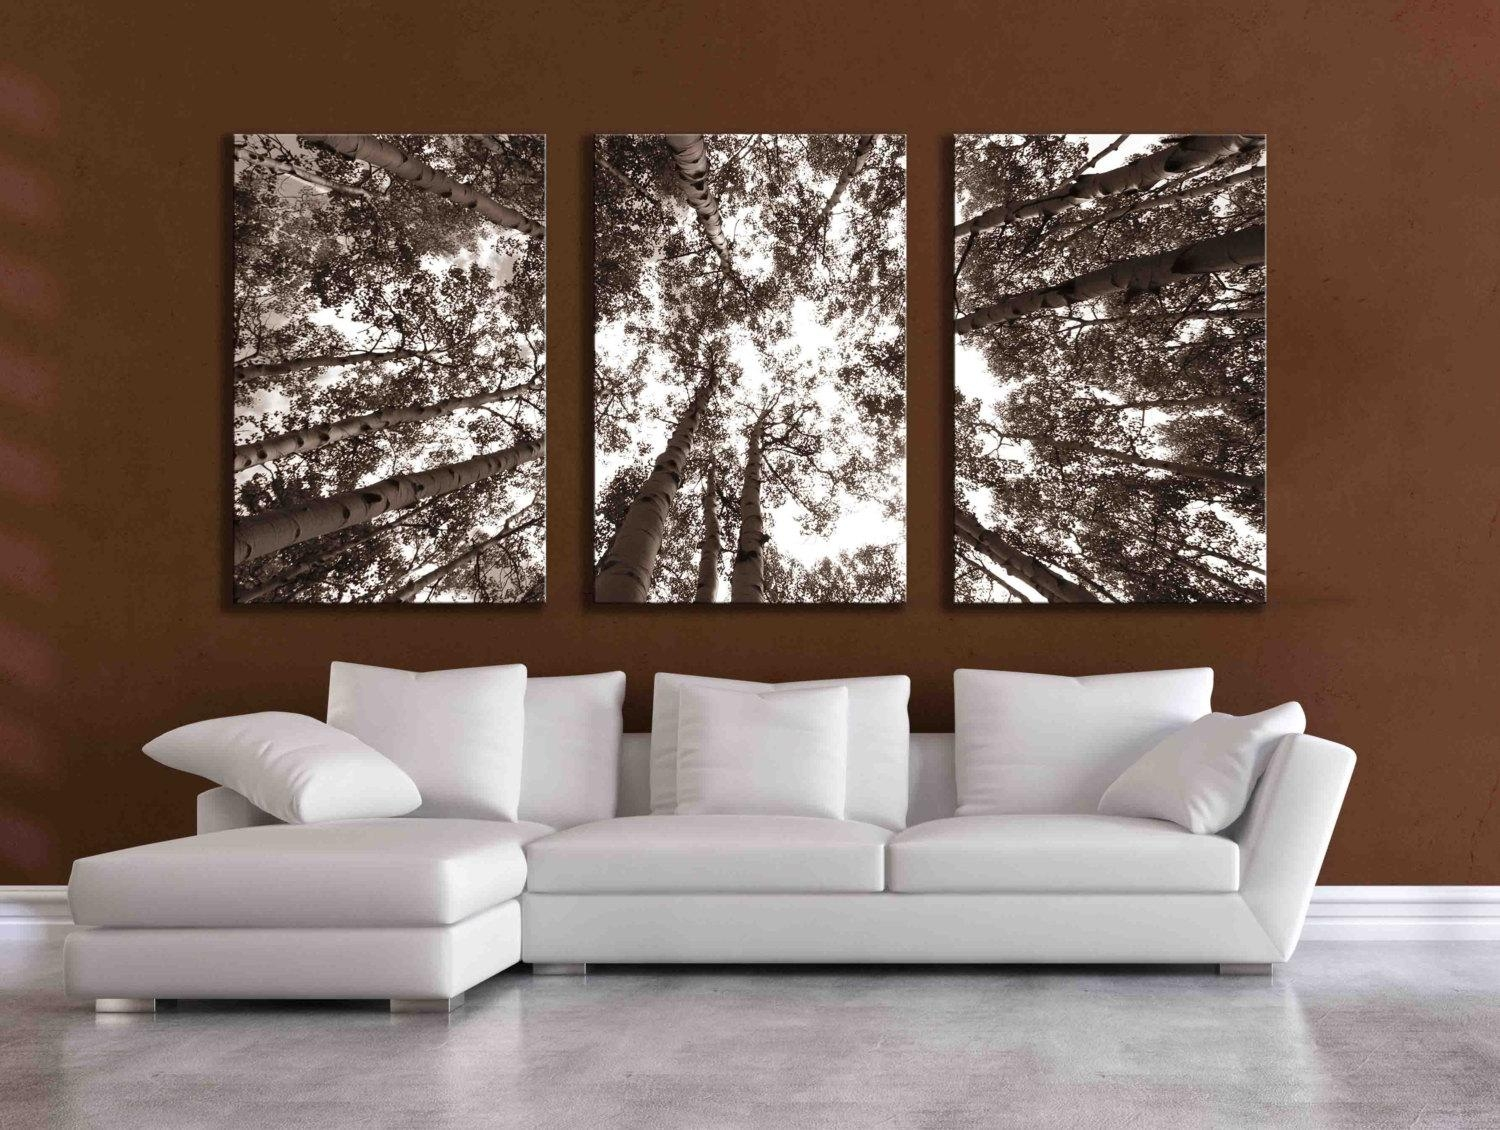 Wall Panel Art Perfect Metal Wall Art For Oversized Wall Art With Regard To Oversized Metal Wall Art (View 6 of 23)